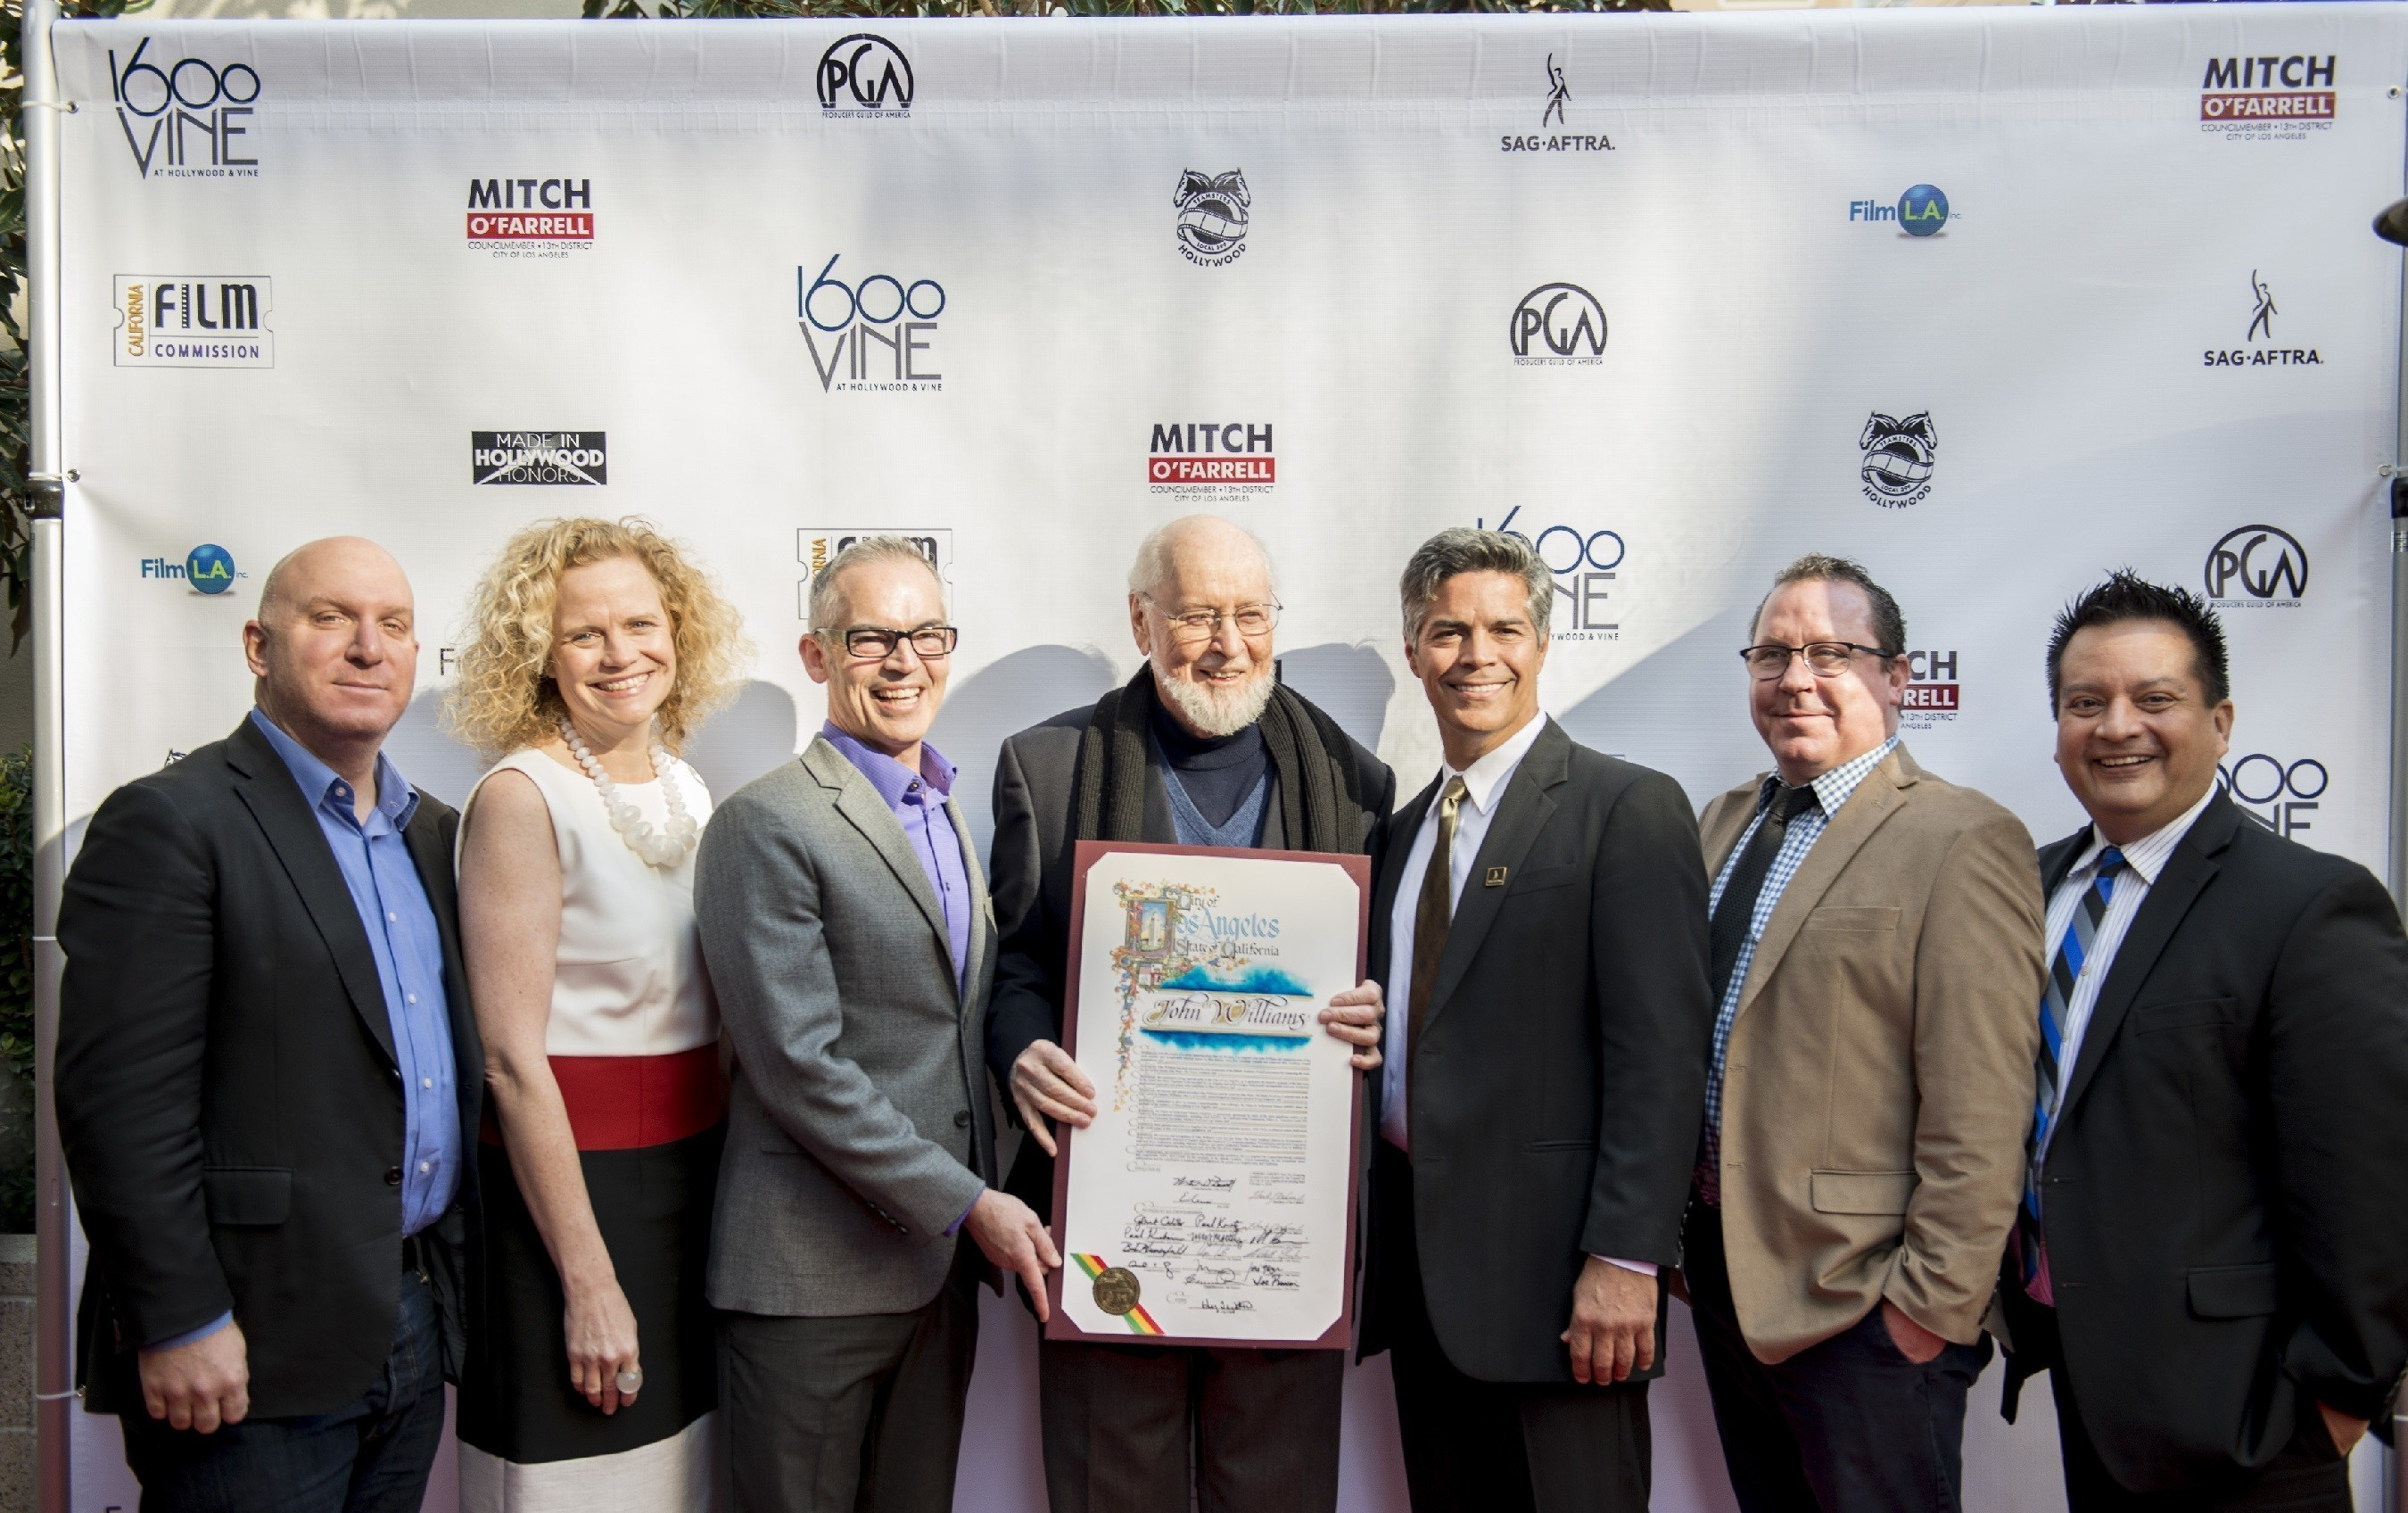 Made in Hollywood Honors 2016 Recipients Legendary composer John Williams, first recipient of the MIHH Lifetime Contribution to Hollywood Tribute joins Los Angeles City Councilman Mitch O'Farrel (to his right) and event host Esai Morales (to his left) with fellow honorees (from left to right) Straight Outta Compton producer Scott Bernstein, Inside Out screenwriter Meg LeFauve, and Anomalisa producers Joe Russo and James Fino (Photo courtesy of 1600 VINE)